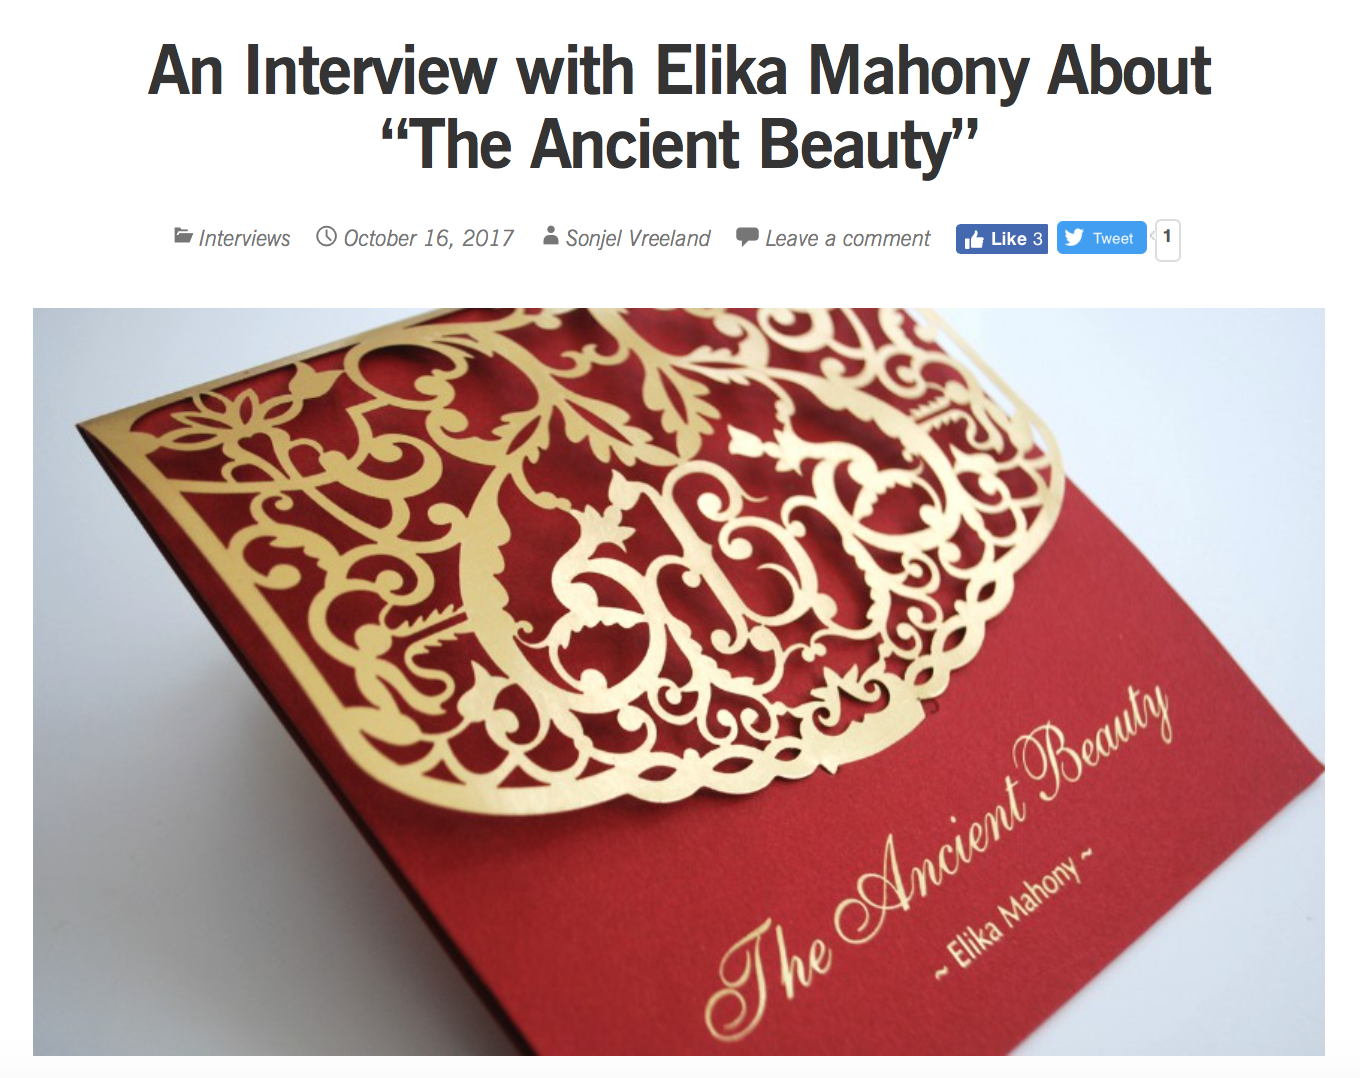 Interview with Baha'i blog